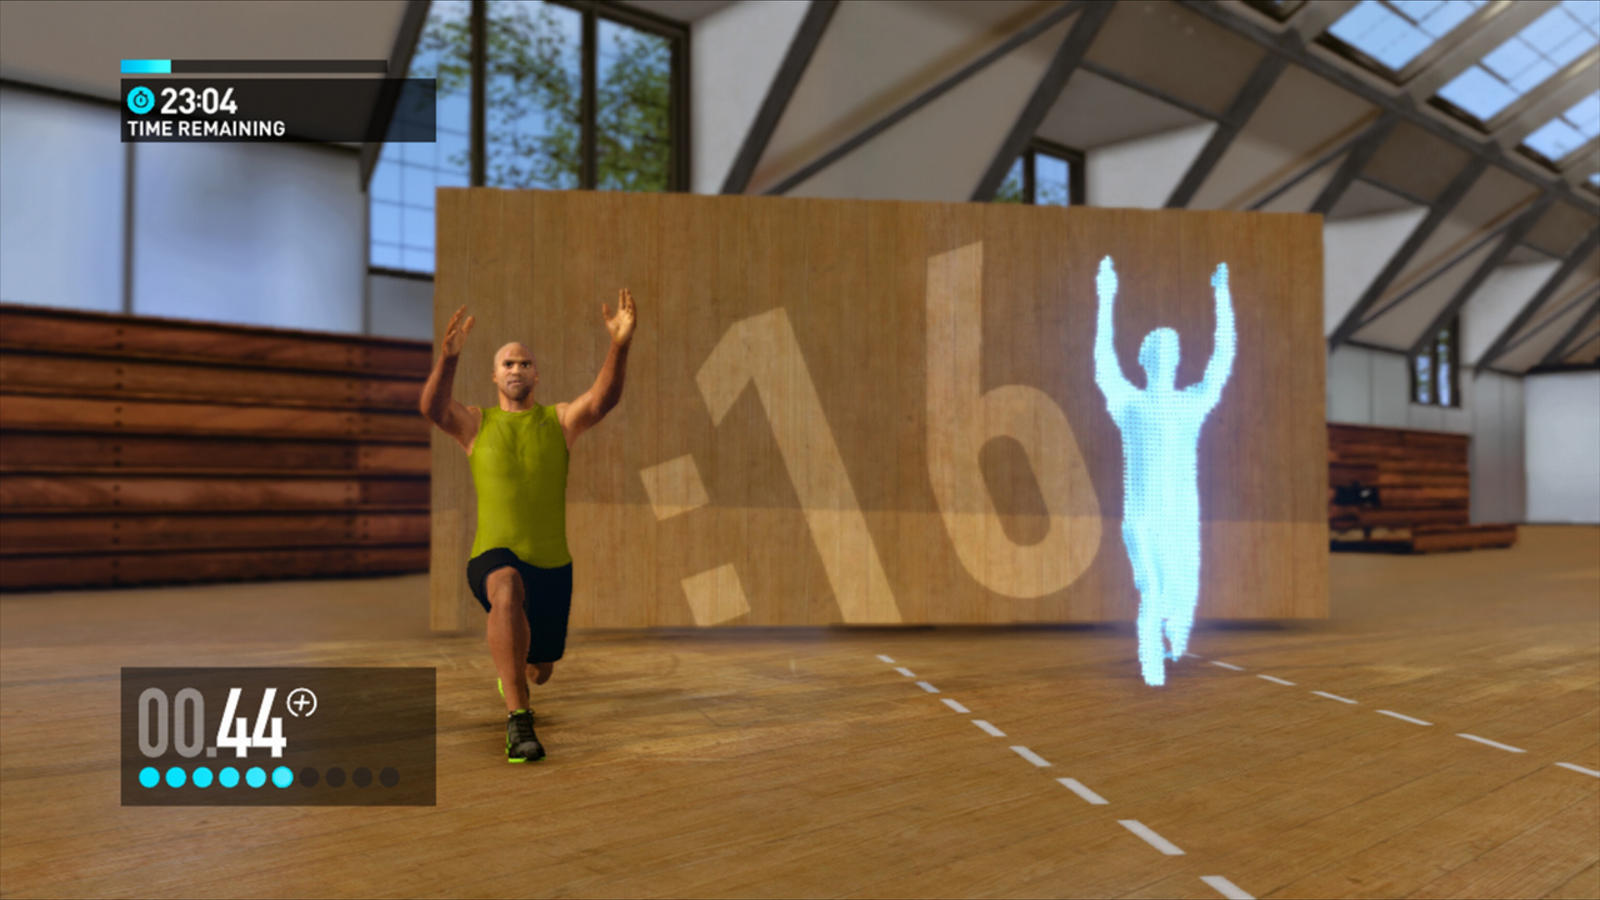 literalmente Acumulativo Recomendación  Get Athlete Fit with Nike+ Kinect Training - Nike News